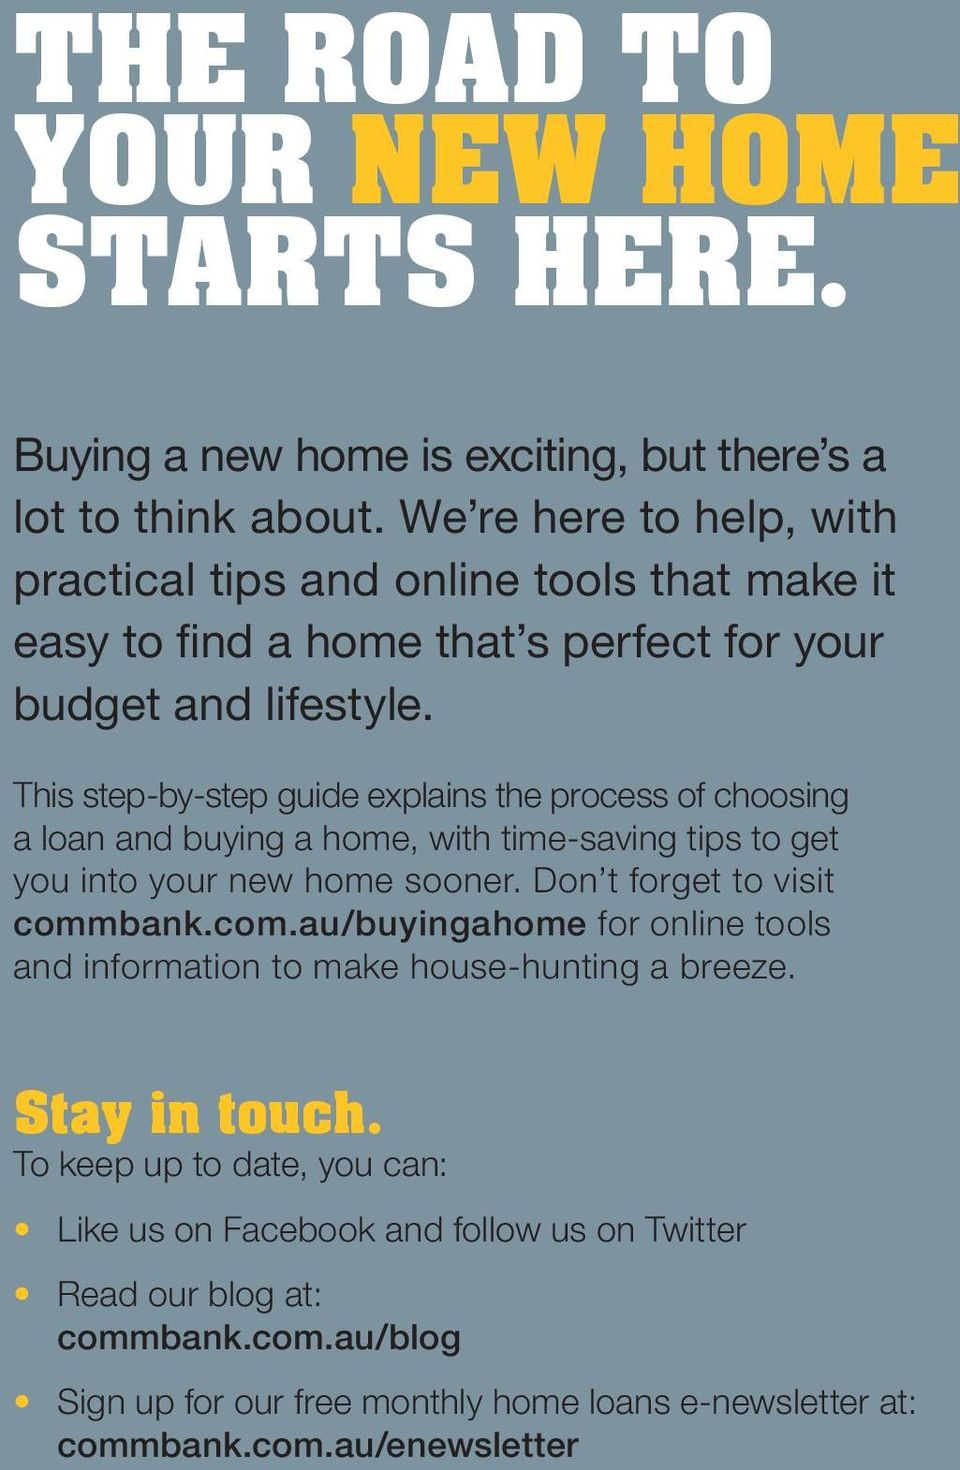 This step-by-step guide explains the process of choosing a loan and buying a home, with time-saving tips to get you into your new home sooner. Don t forget to visit comm